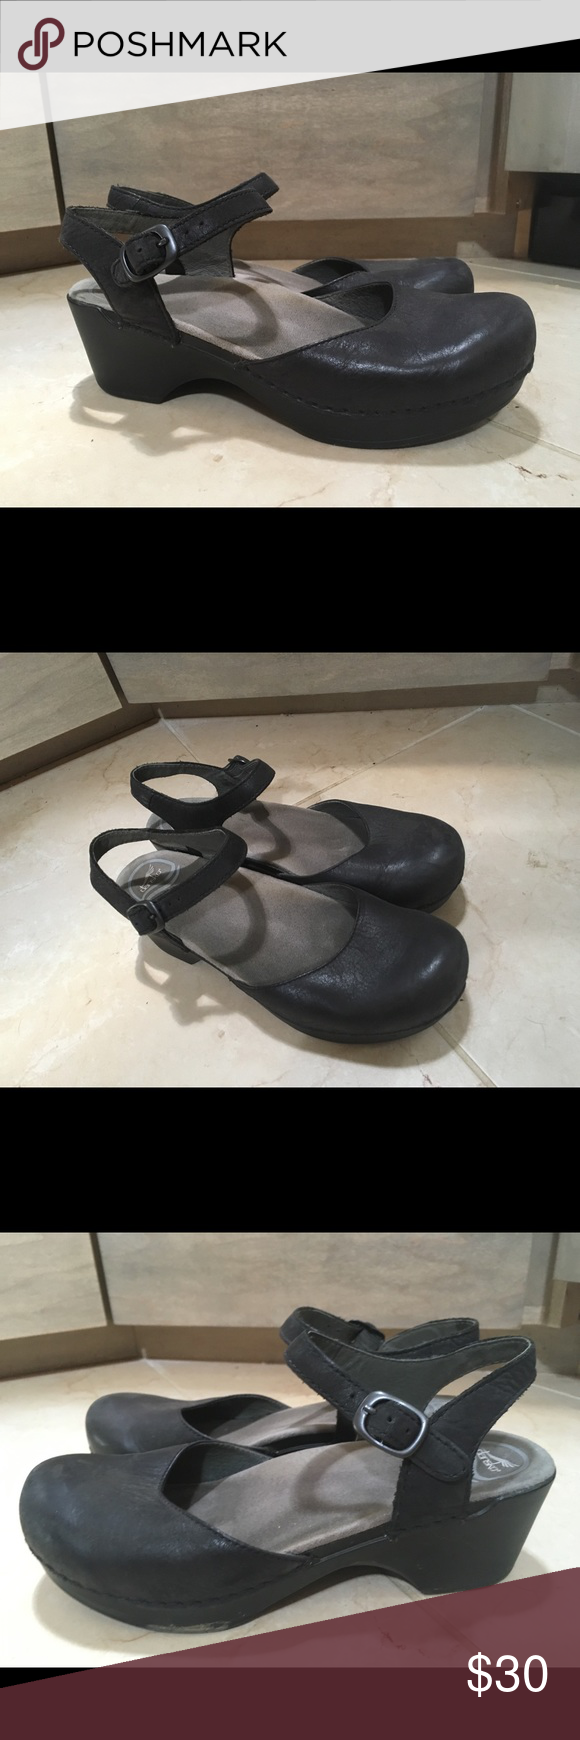 09dff666eab74 Dansko SAM Black soft full grain leather. Great for teaching   nursing    comfort shoes that don t look like the typical clog. I m already tall